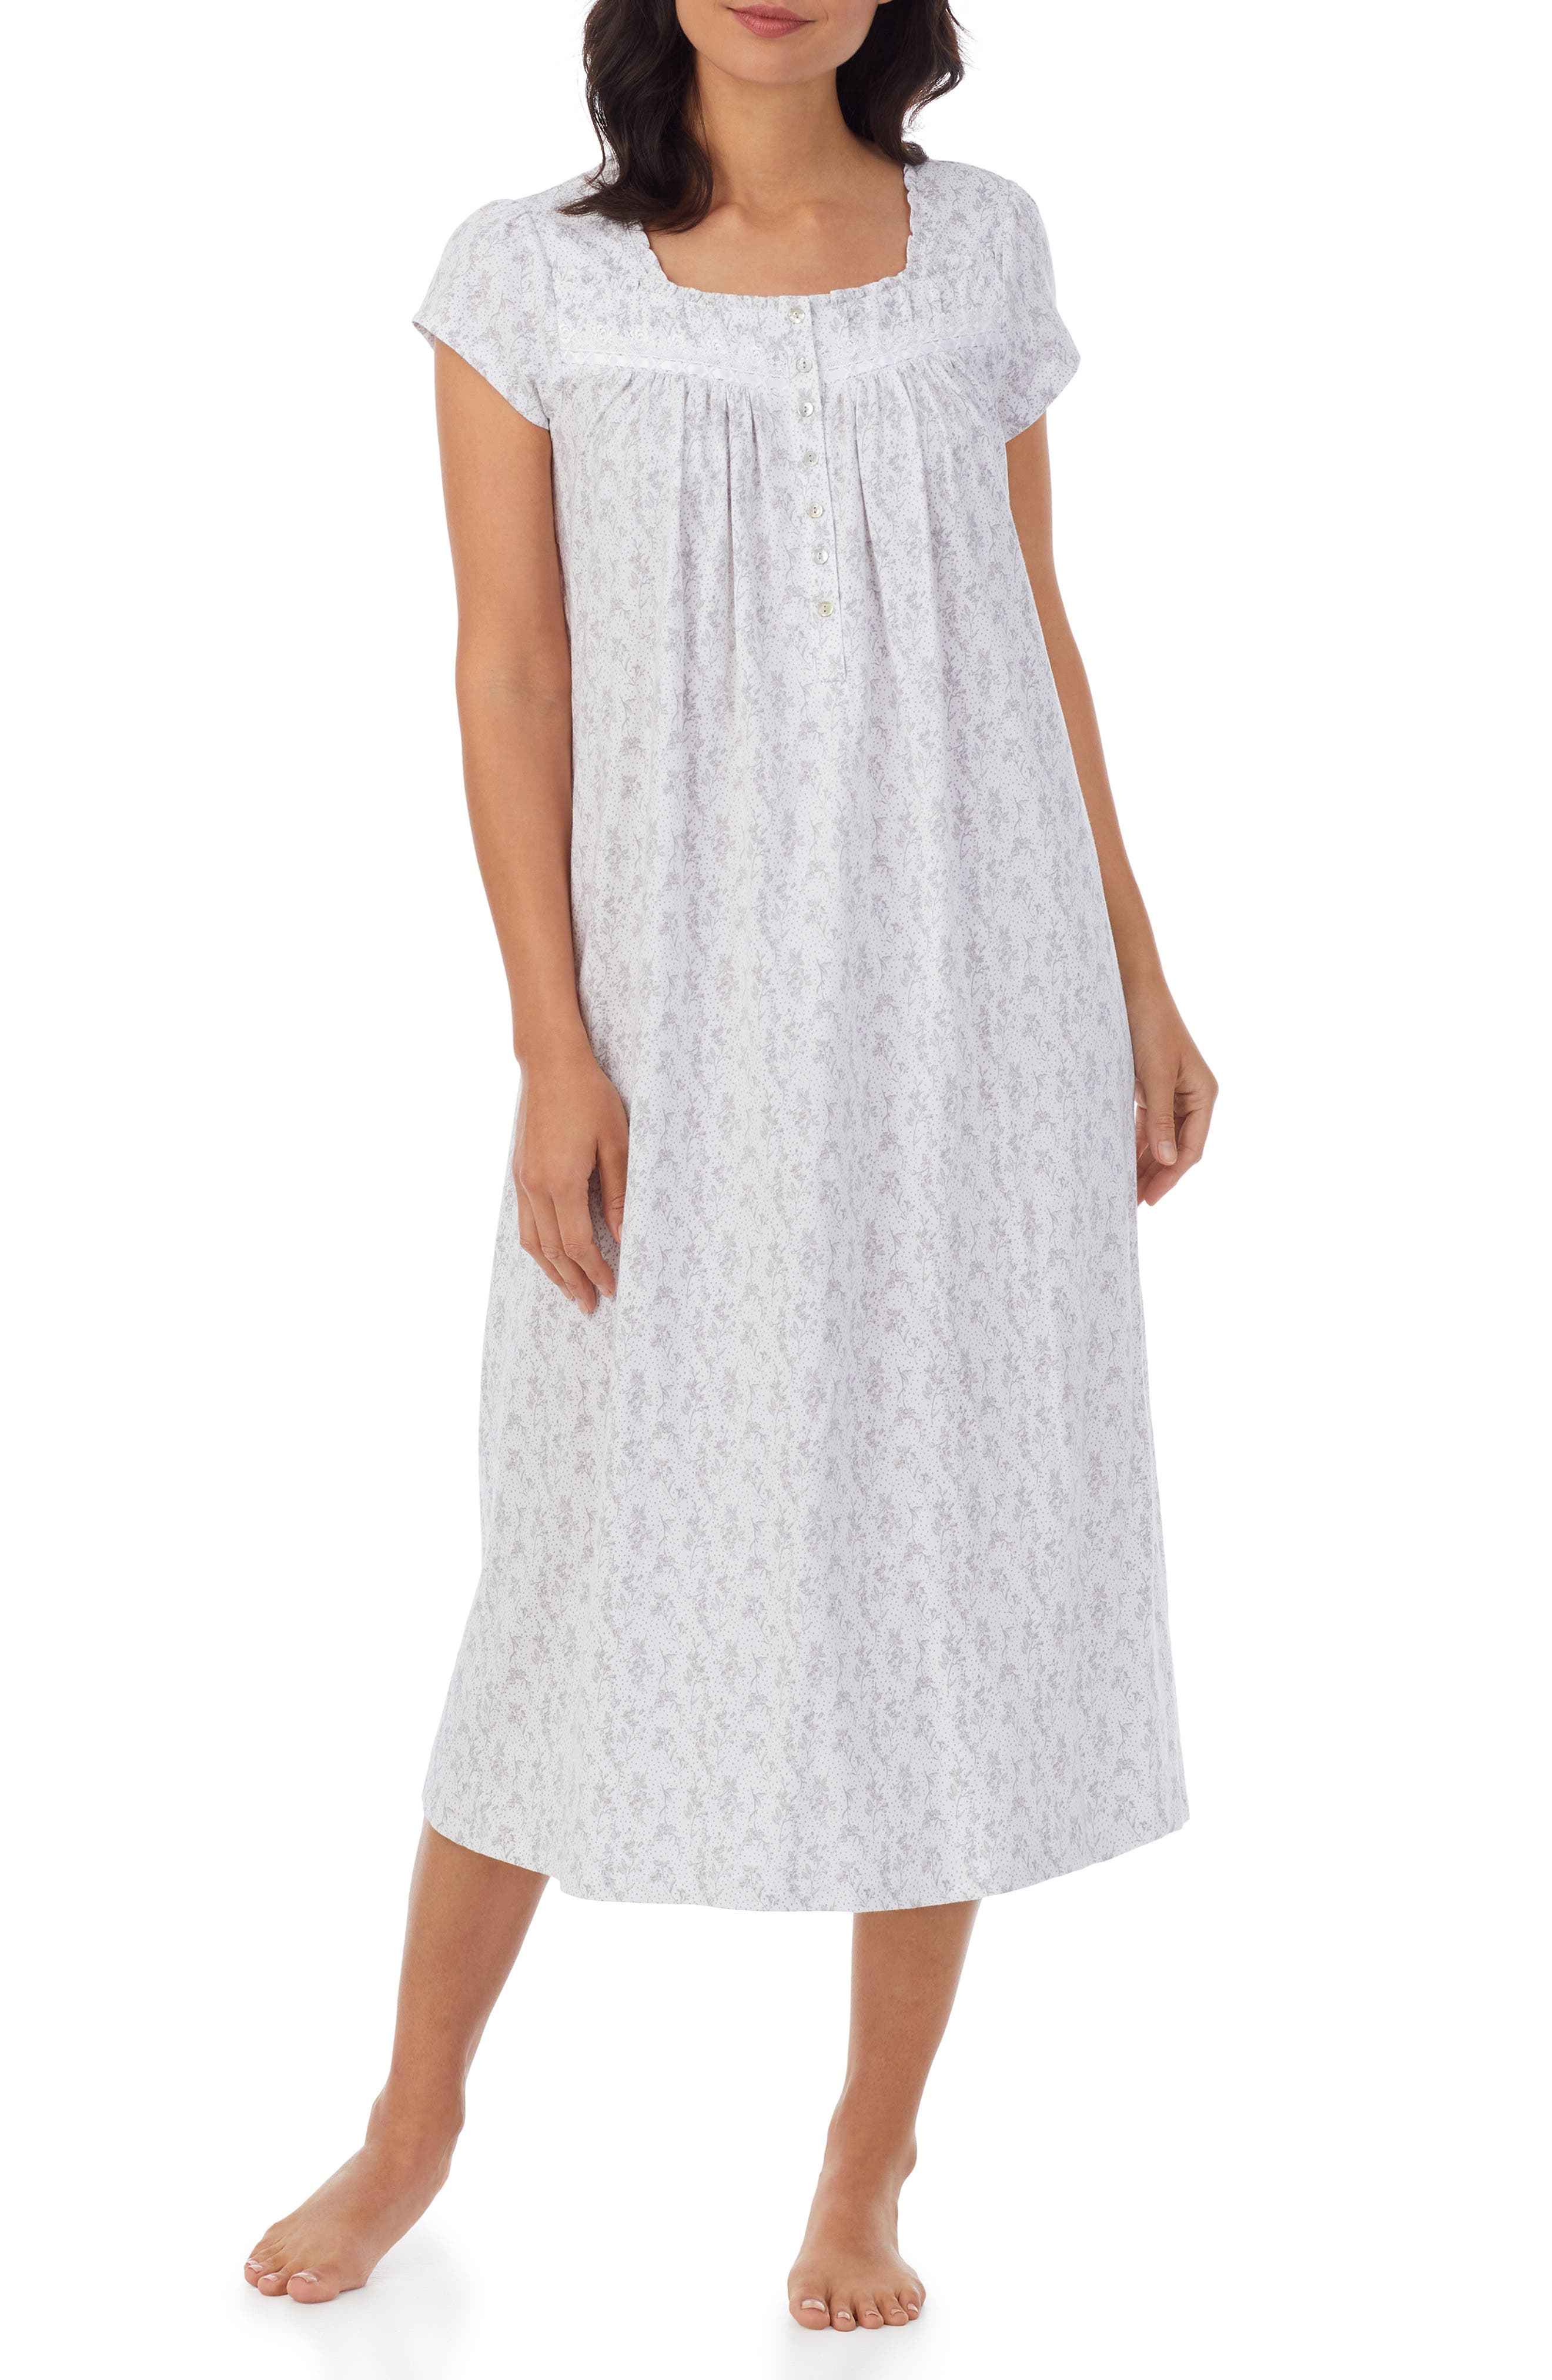 Lace Trim Cotton Jersey Nightgown